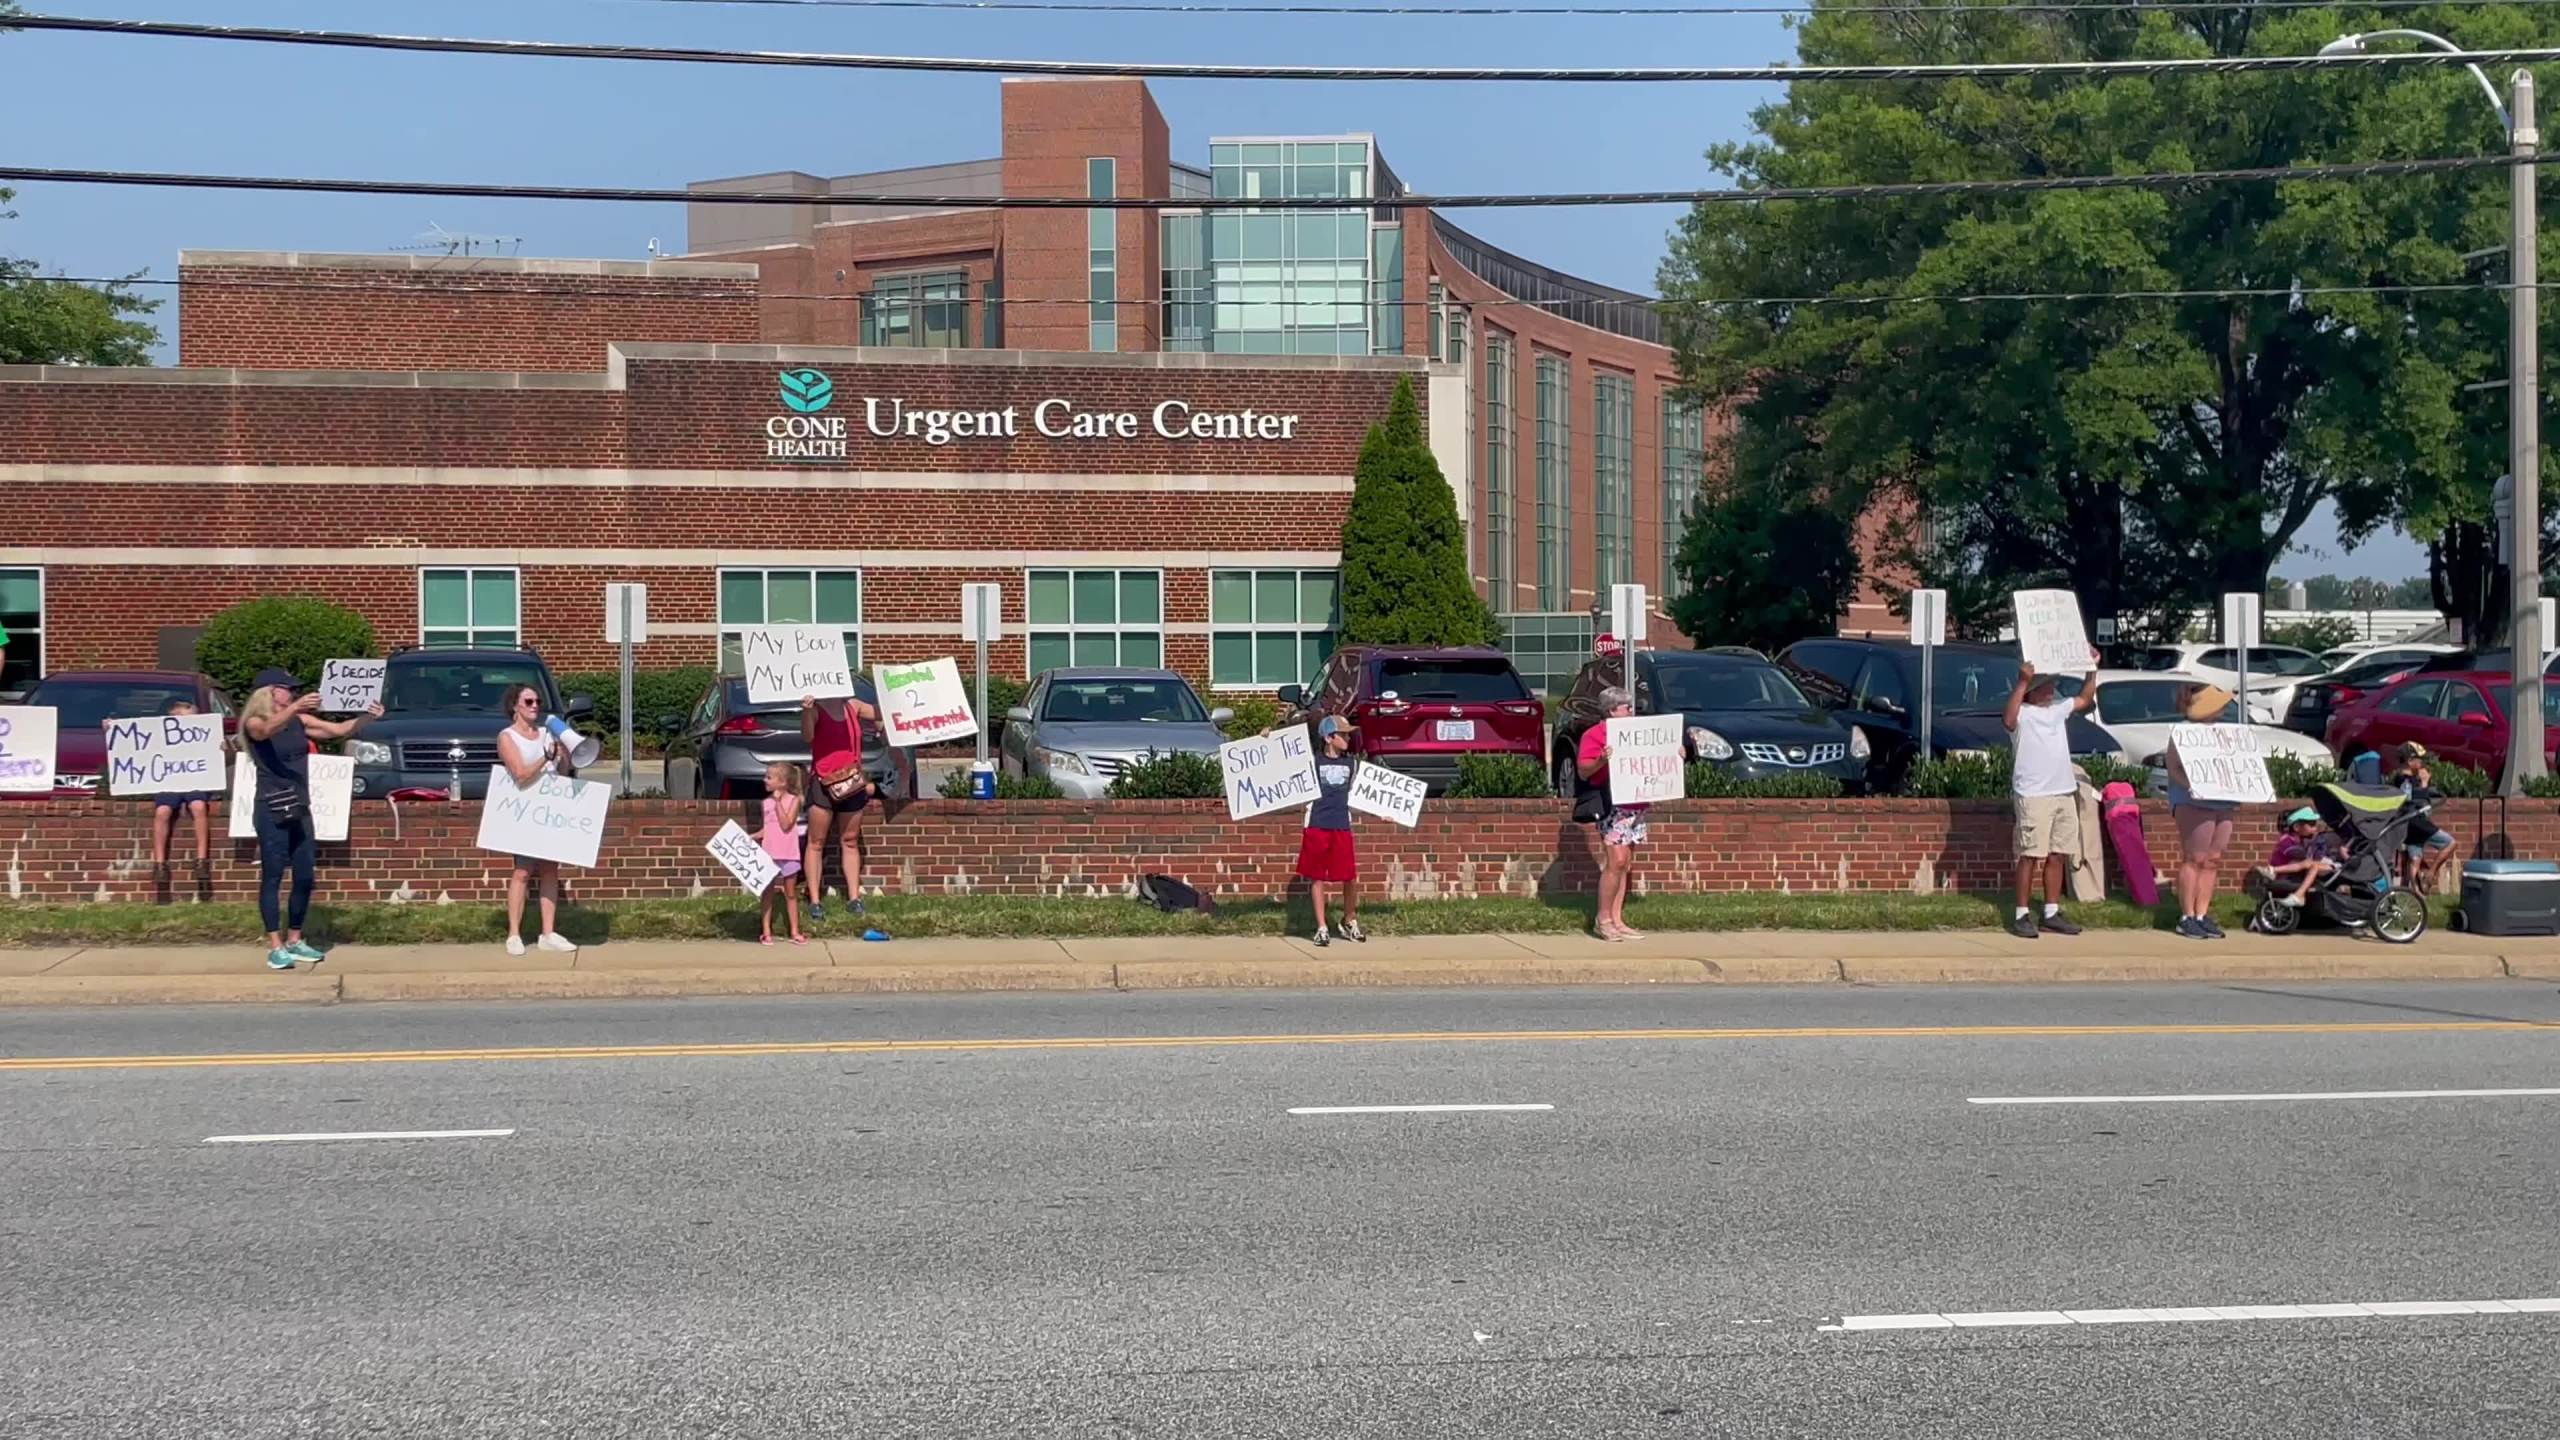 Protesters rally against Cone Health's COVID-19 vaccination requirement at Moses Cone Hospital in Greensboro